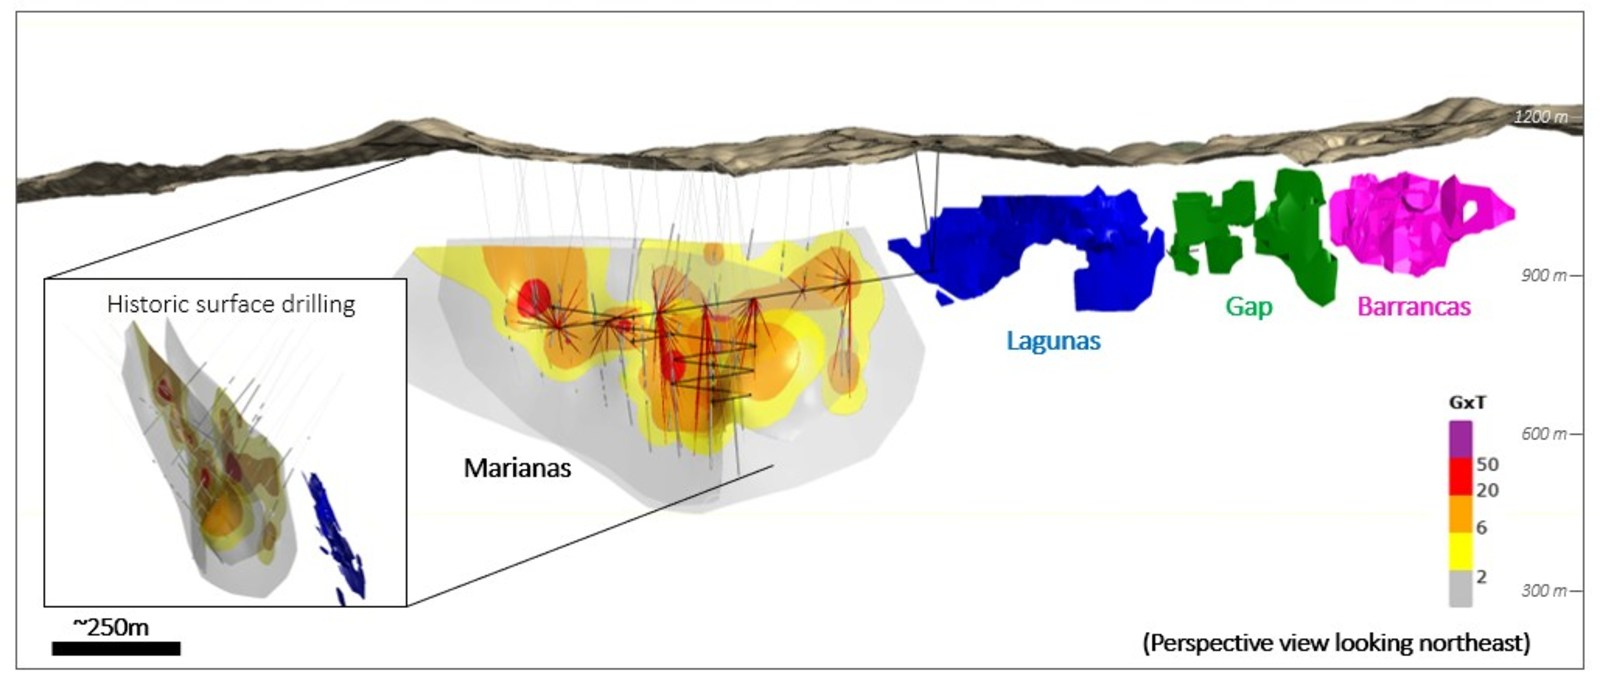 Figure 2: Isometric view of the Mercedes trend showing the grade thickness map for Marianas Veins and the location of the planned ramp and planned drill holes.